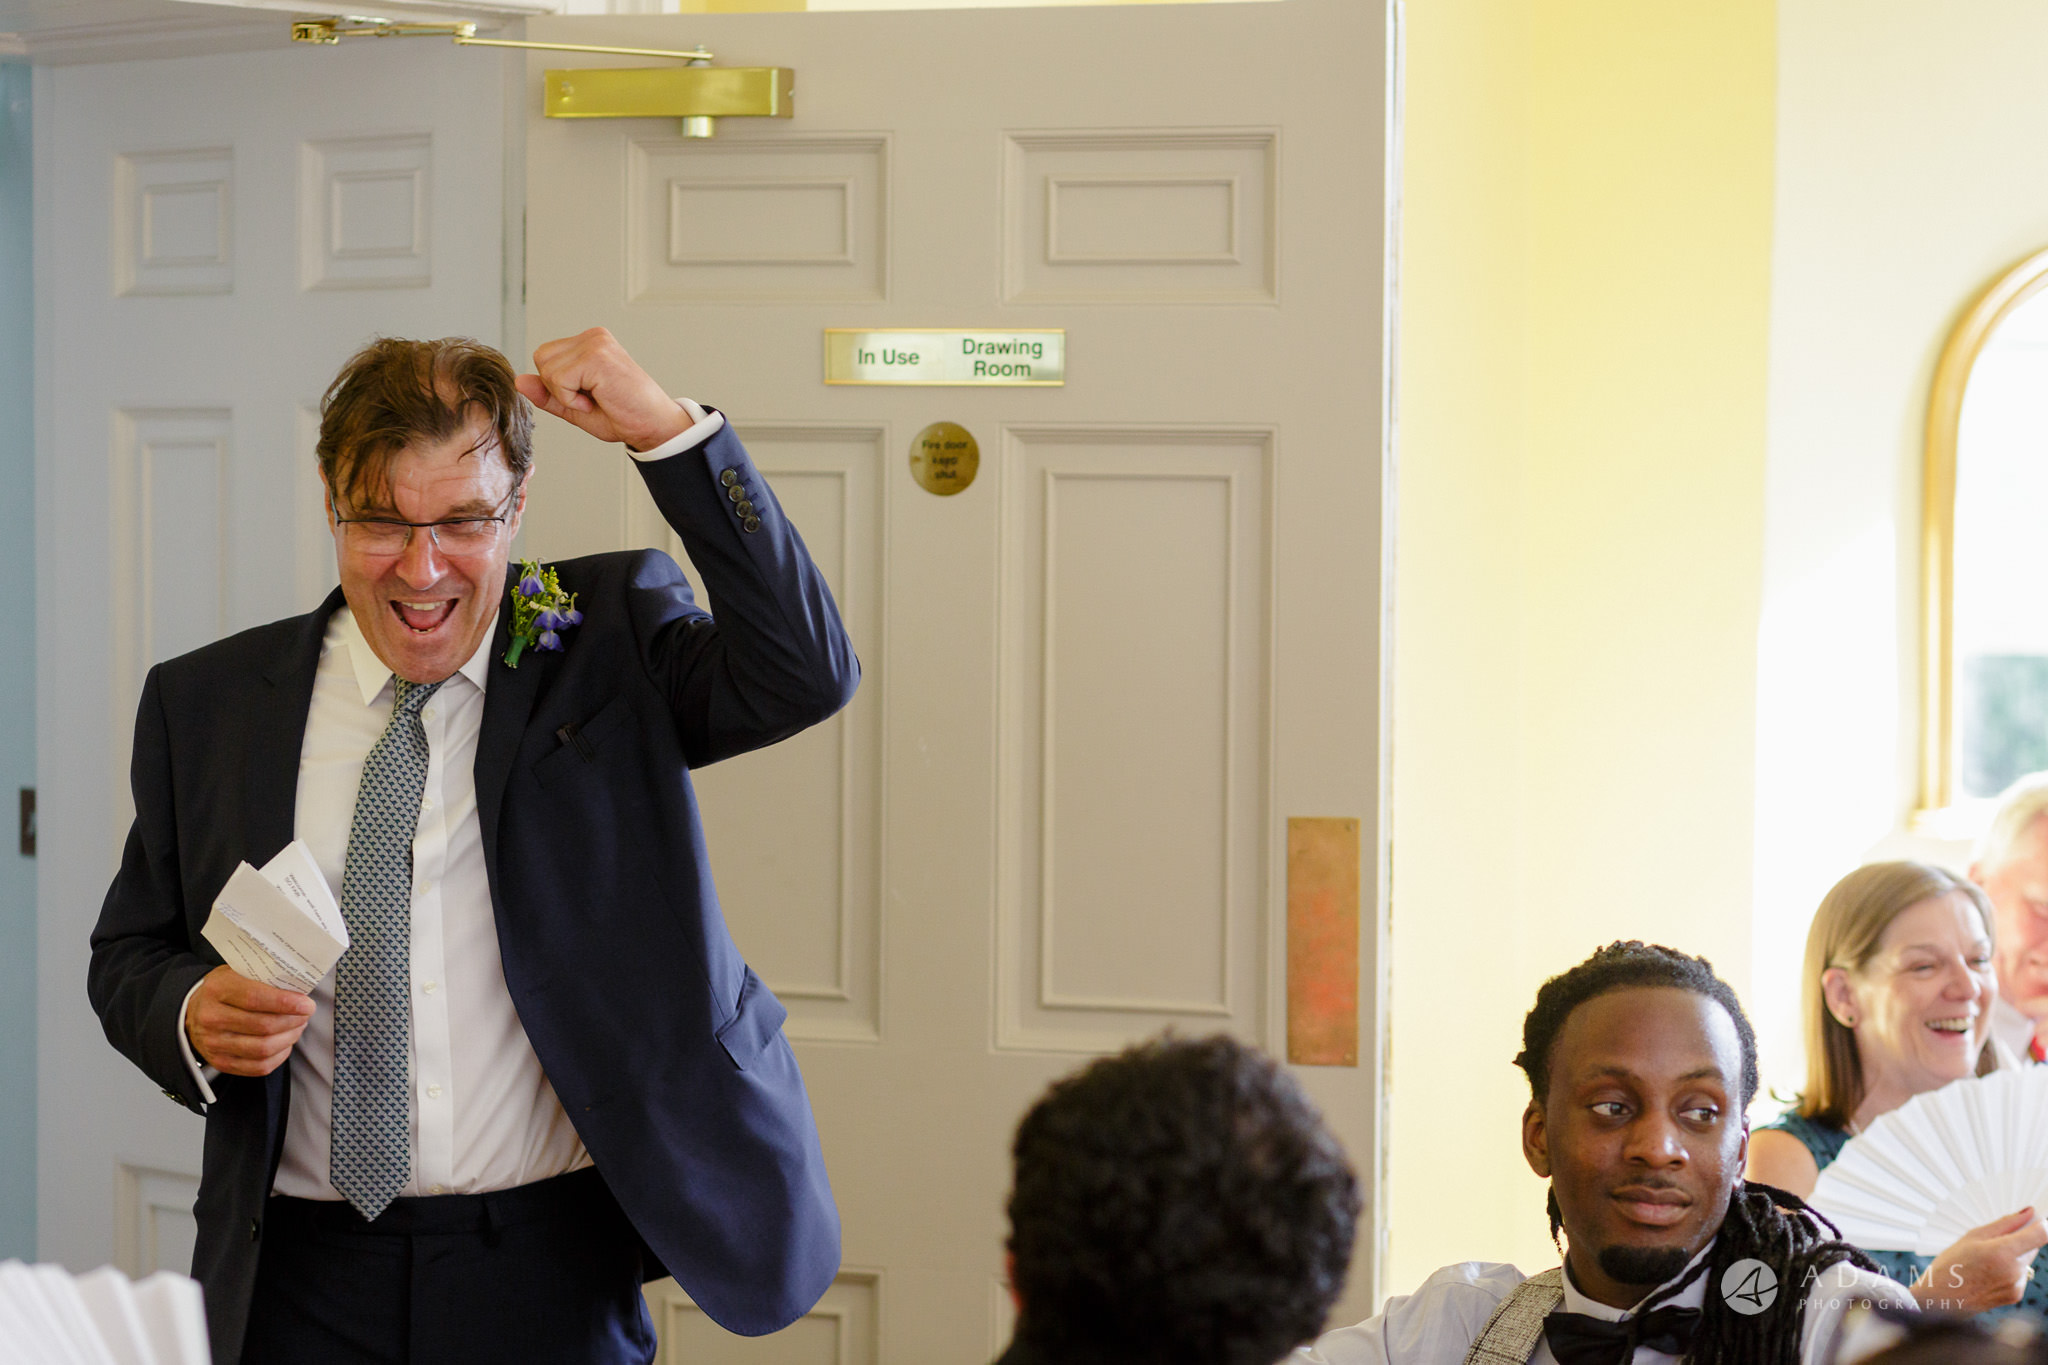 Clissold house wedding father of the bride in full happines